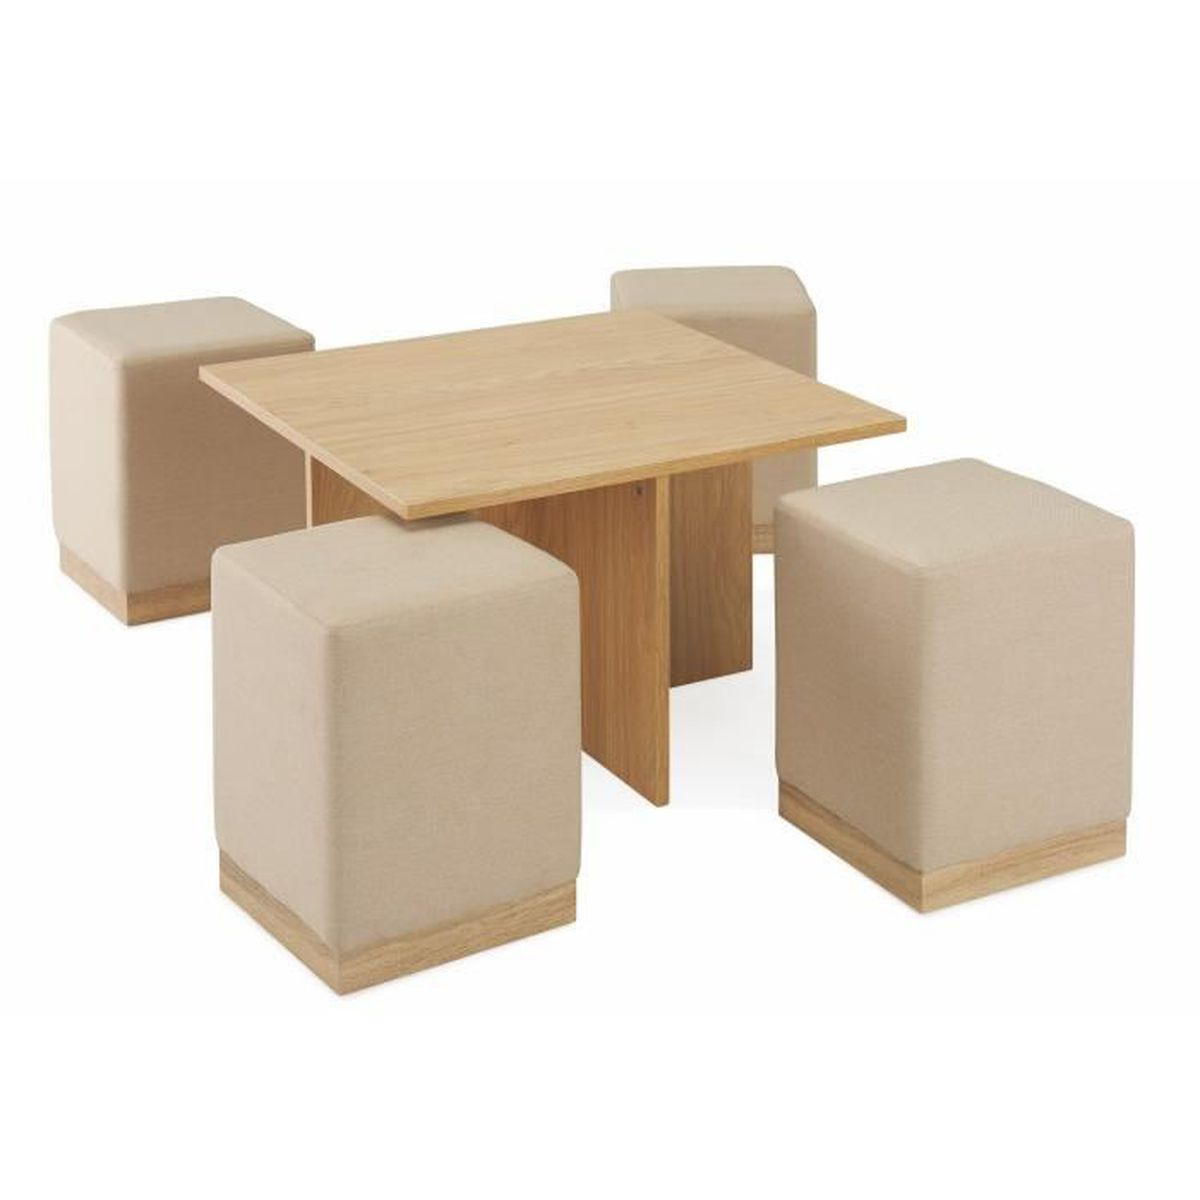 TABLE BASSE CARRÉE + 4 POUFS ENCASTRABLE LYZ - Achat / Vente table ...